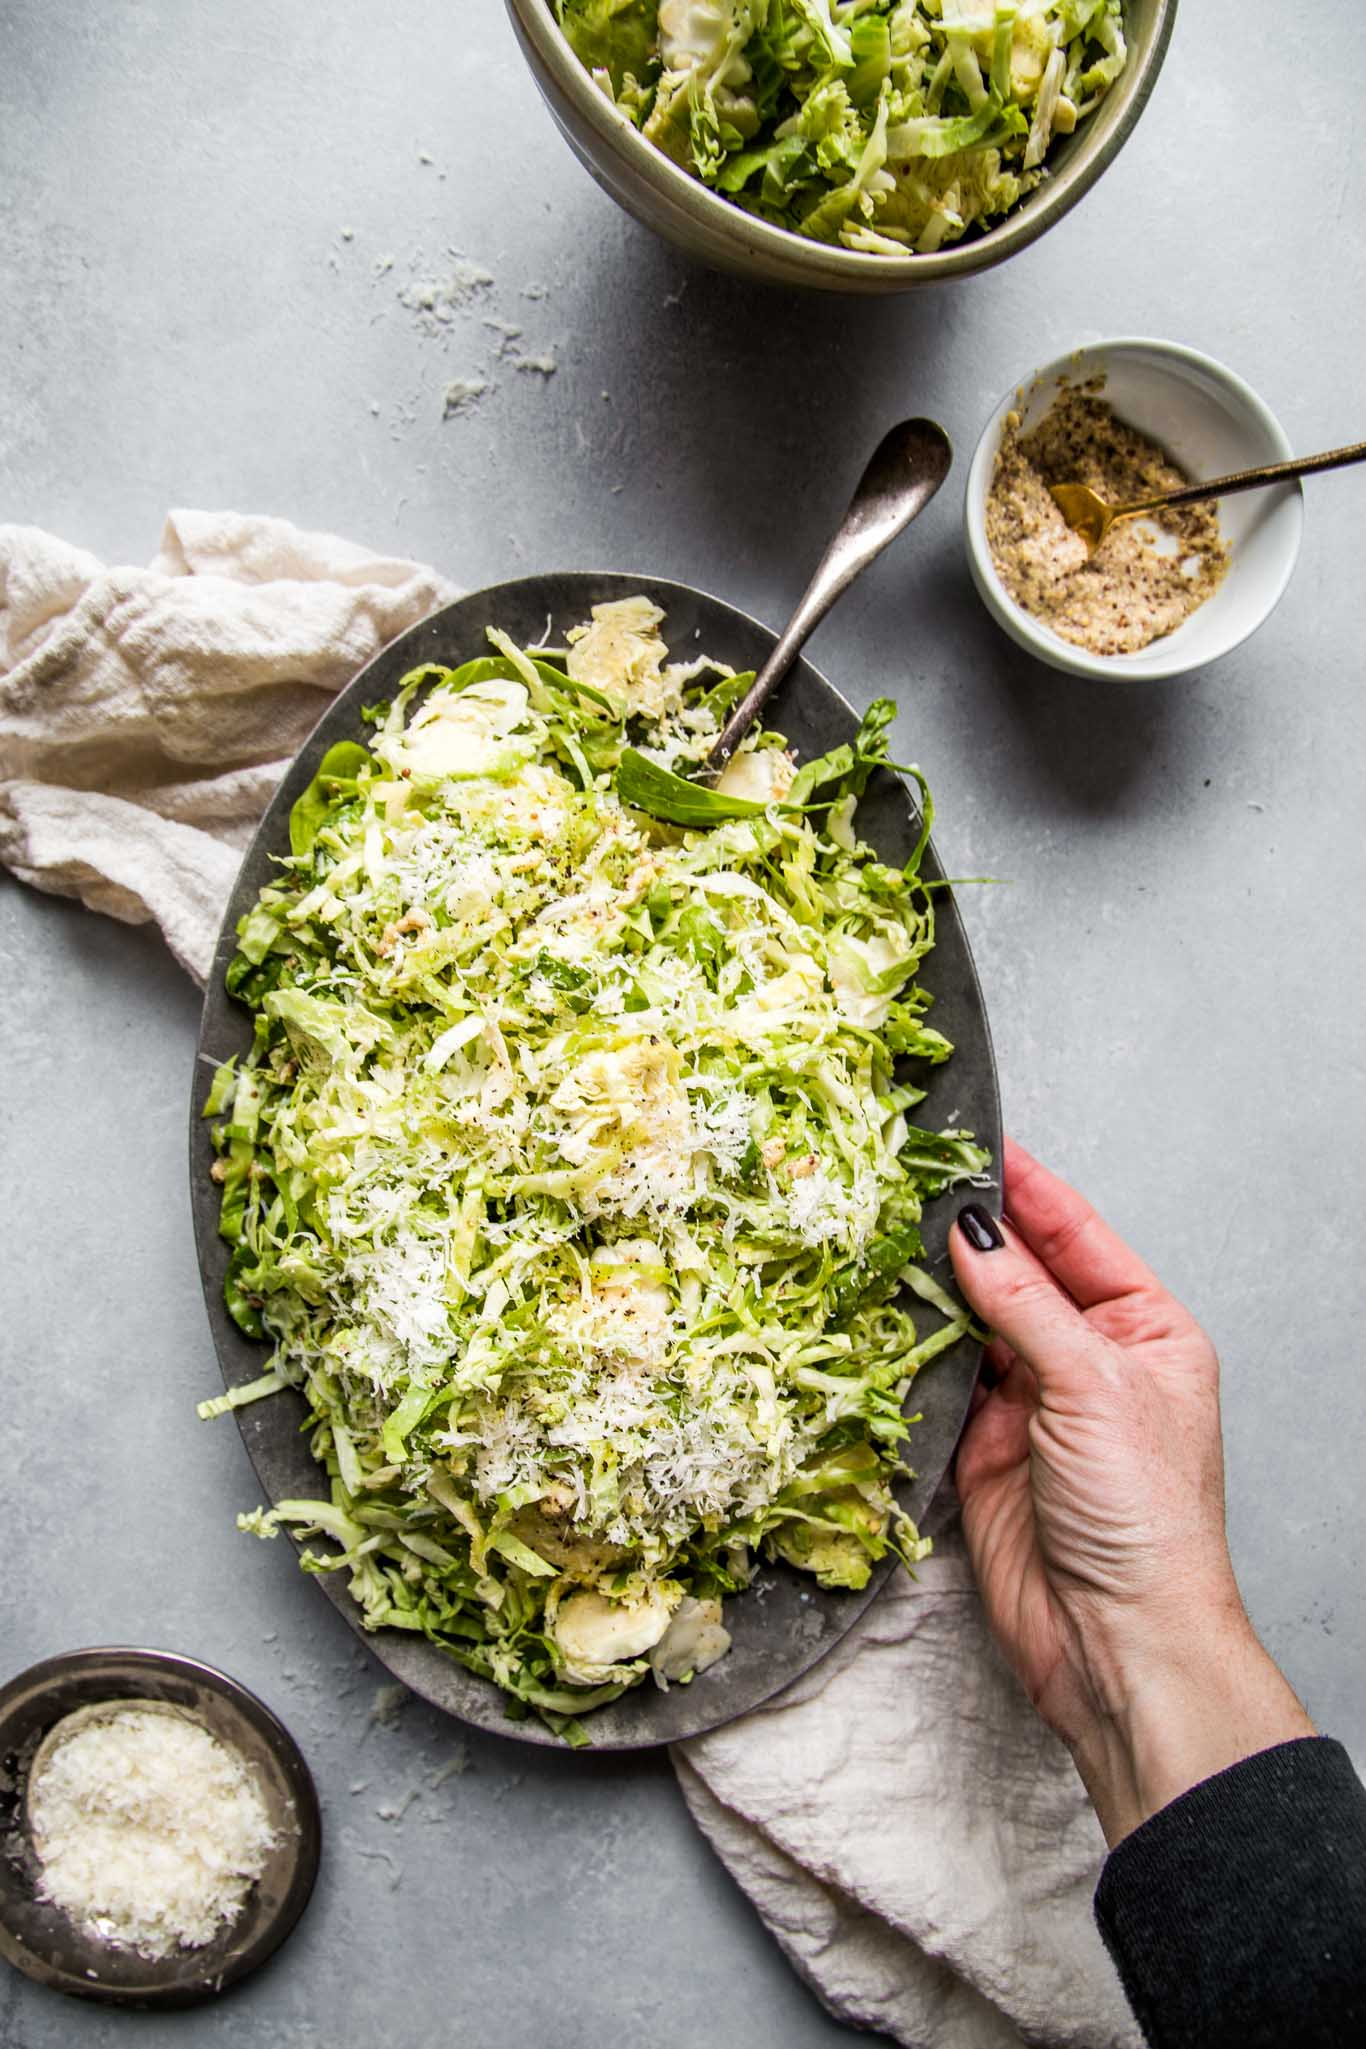 Hand reaching for plate of shaved brussels sprouts salad